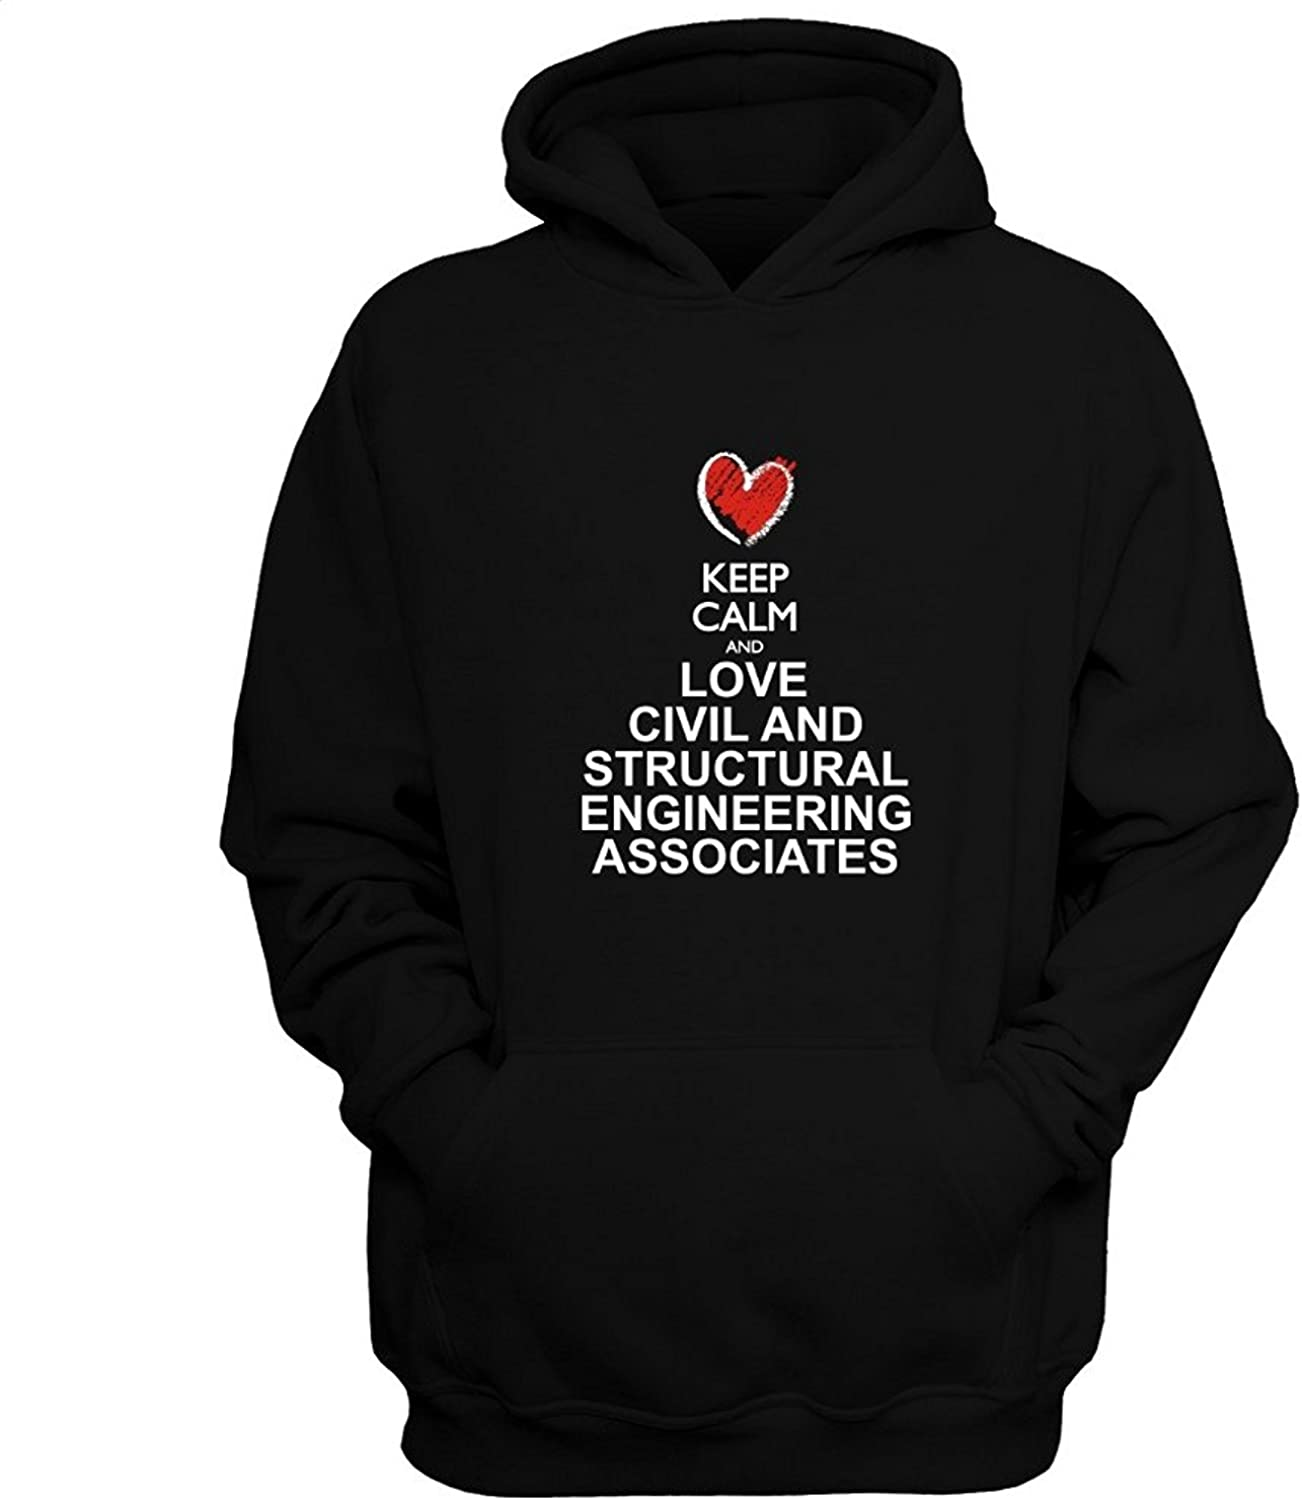 JiuJiuksd Keep calm and love Civil And Structural Engineering Associates chalk Hoodie